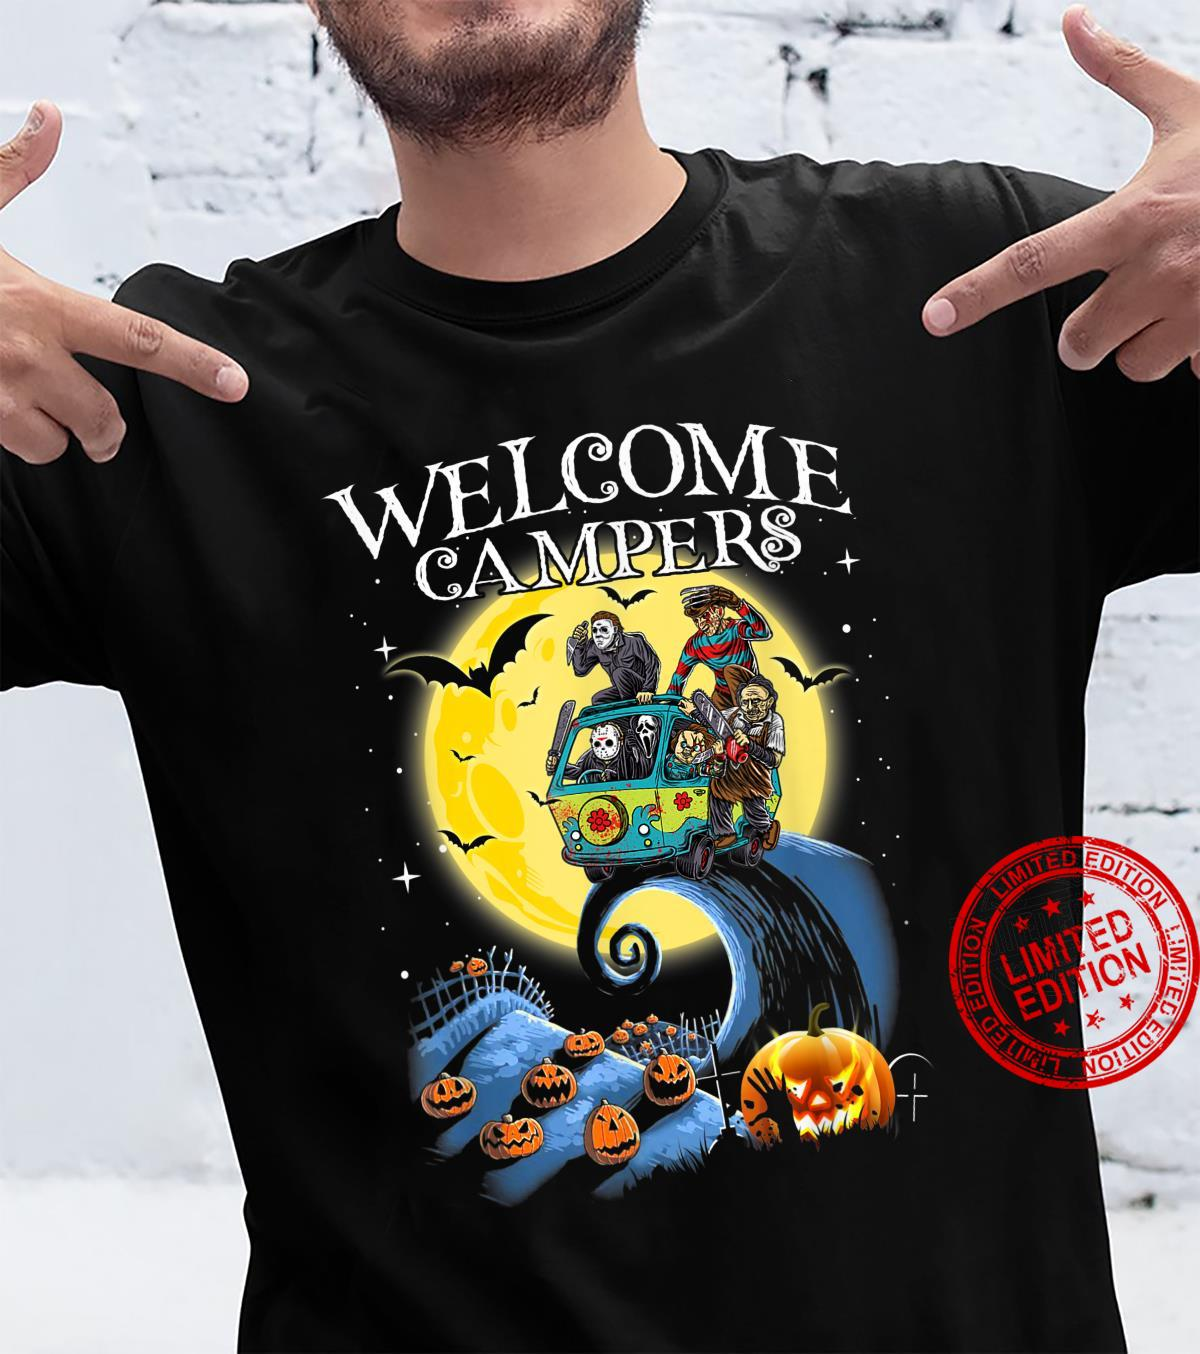 Welcome Campers Funny Camping 80s Horror shirt